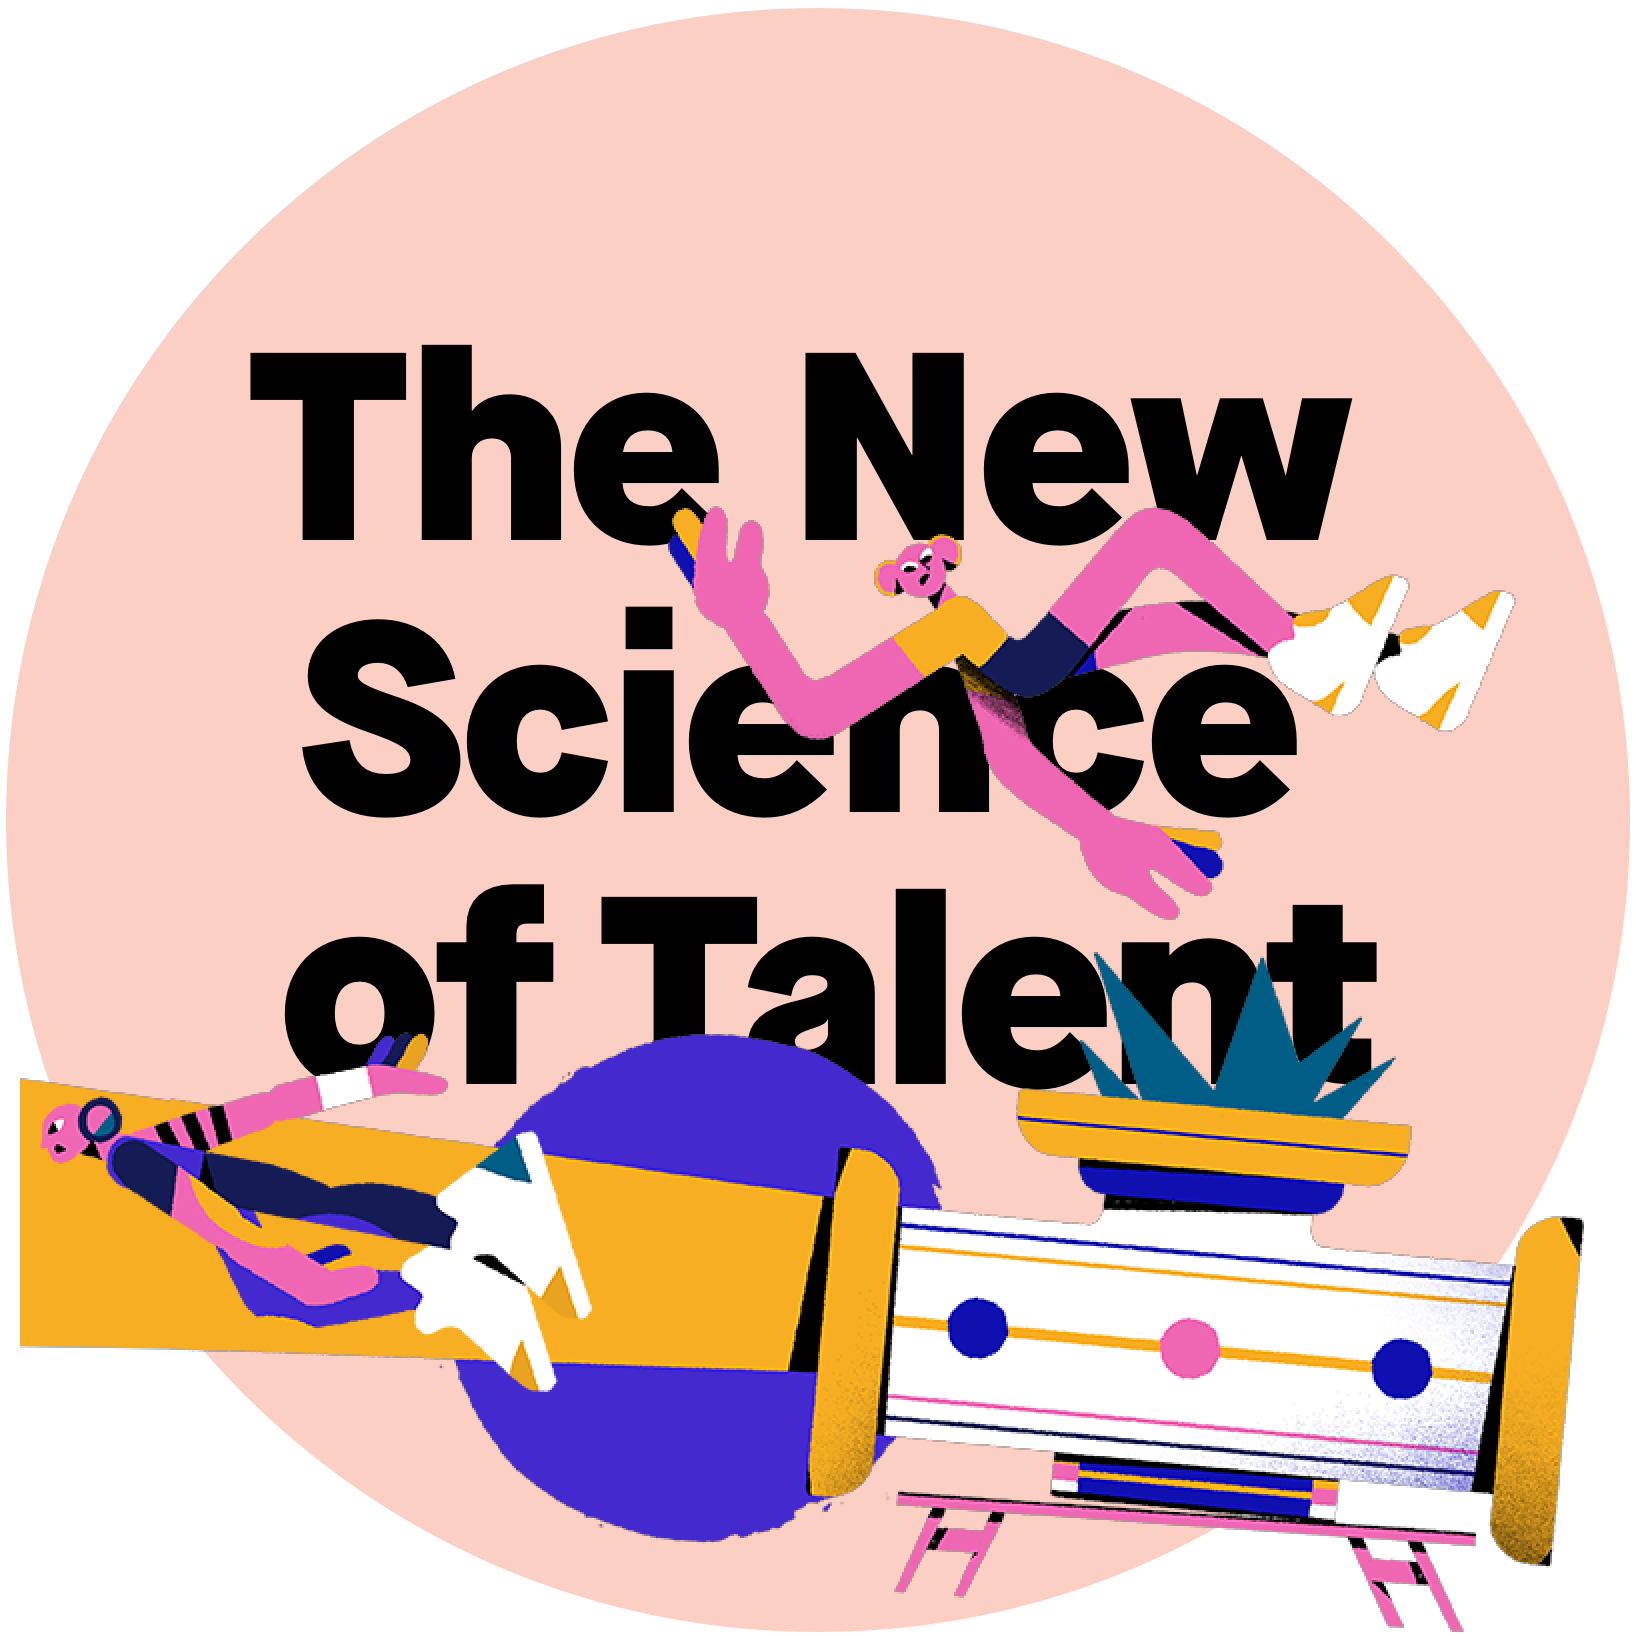 The New Science of Talent